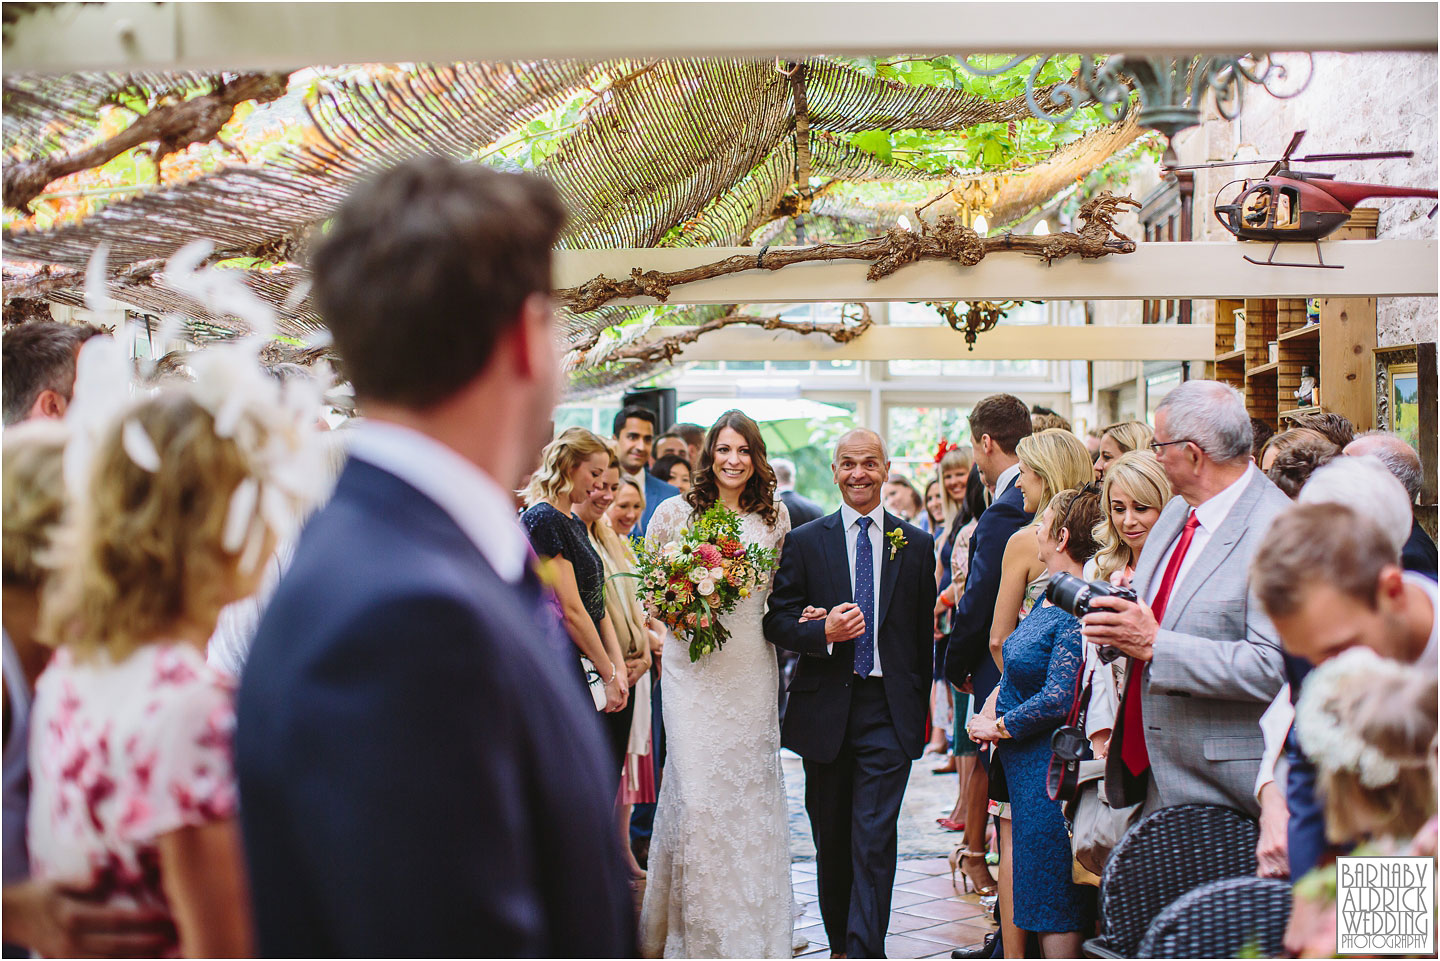 A bride walking down the aisle at her wedding ceremony at The Crab and Lobster in Yorkshire